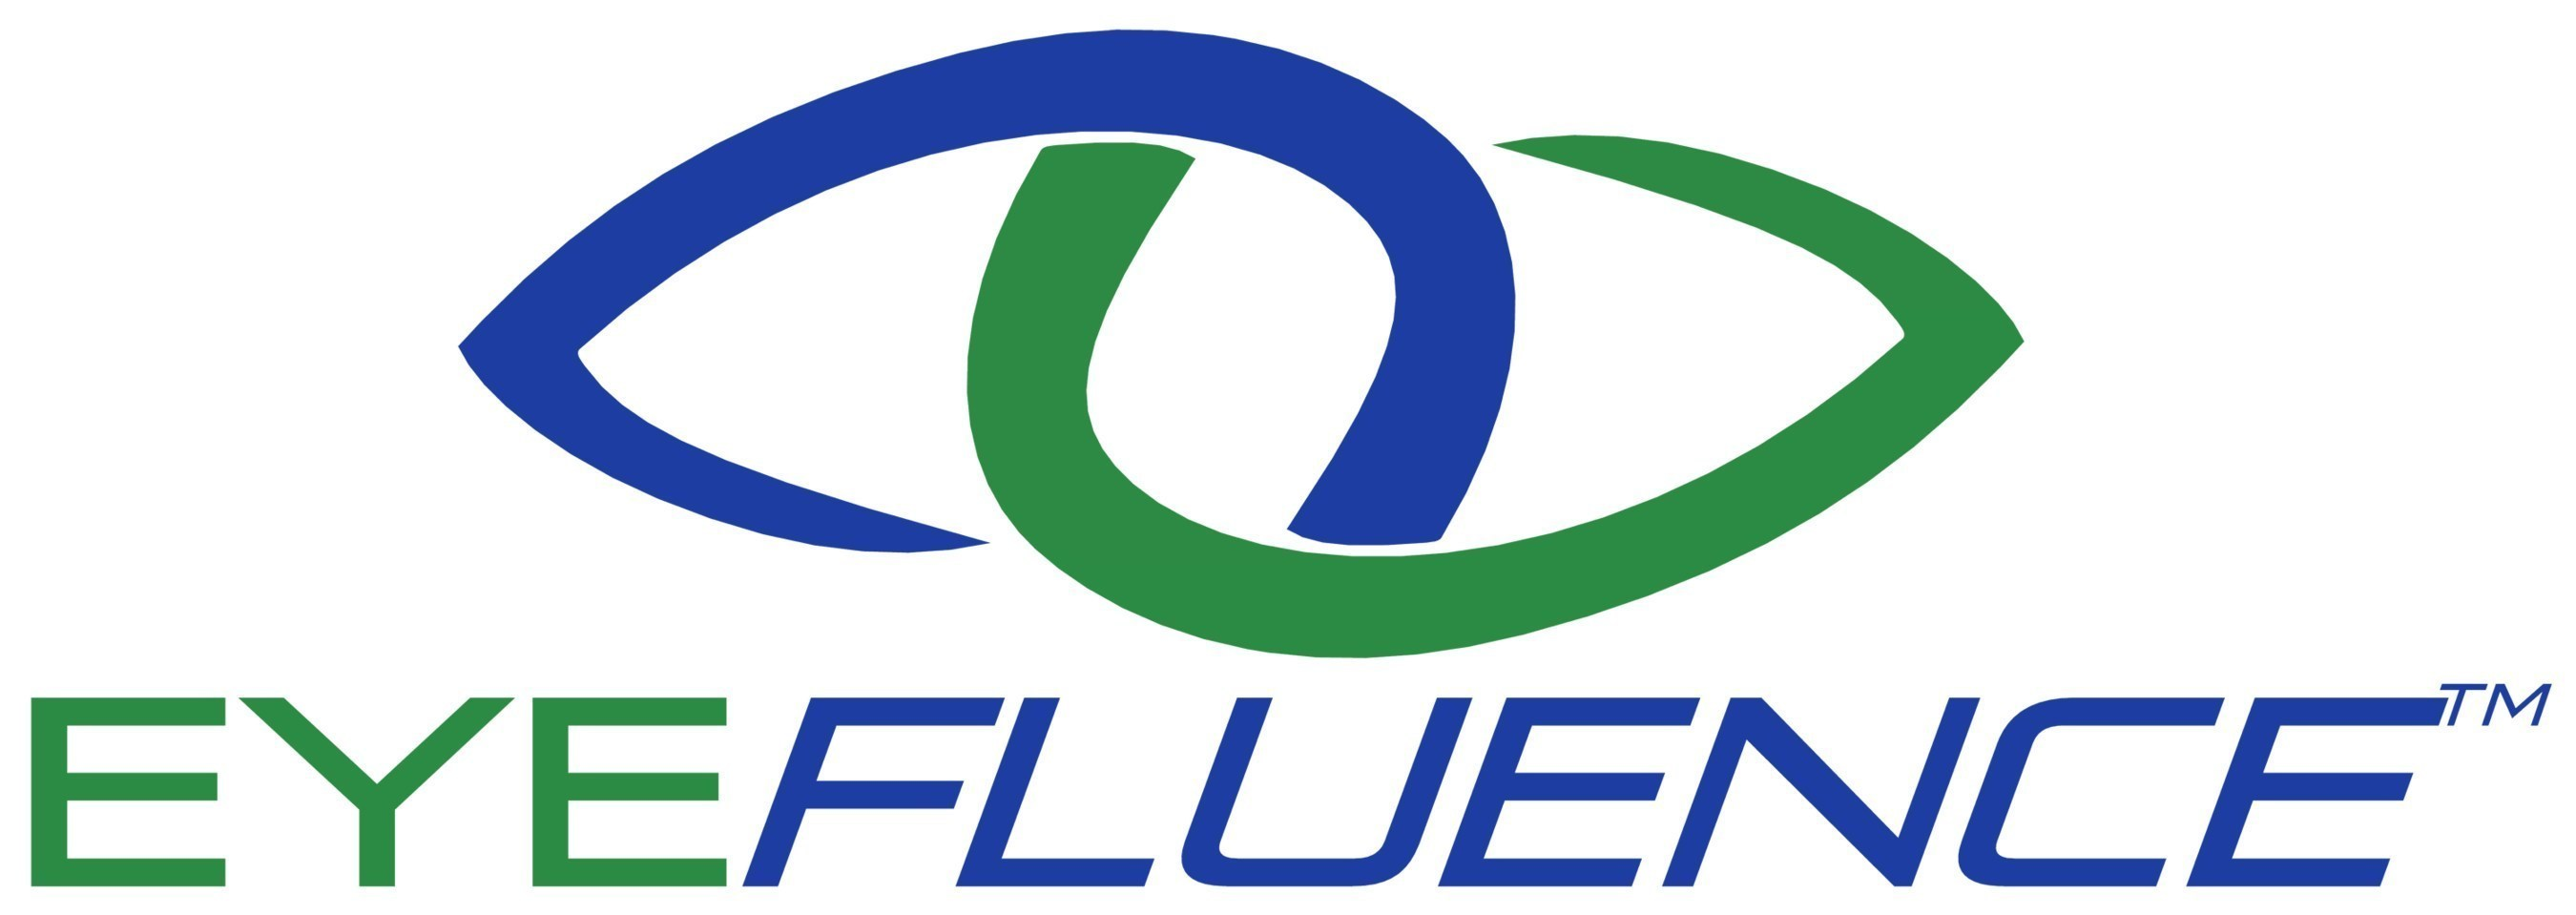 Eyefluence is the world's first vision-driven user interface for virtual reality, augmented reality, and mixed reality. Eyefluence transforms intent into action through your eyes.